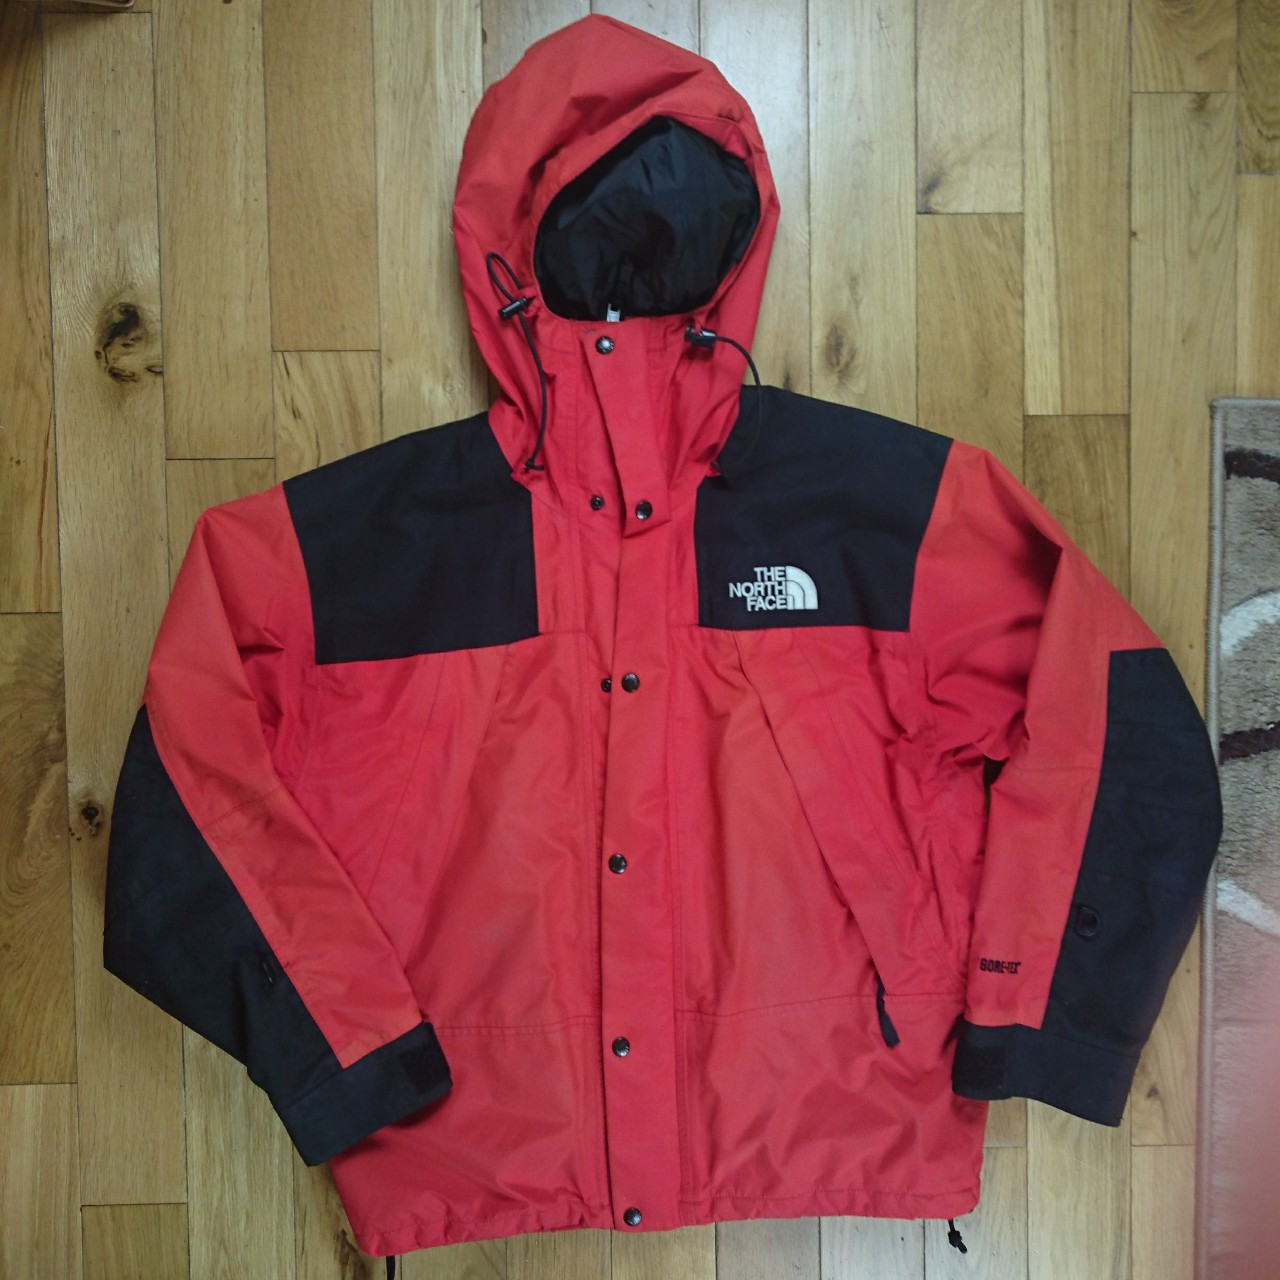 8386a807d Mens north face gore-tex coat size large Used but... - Depop